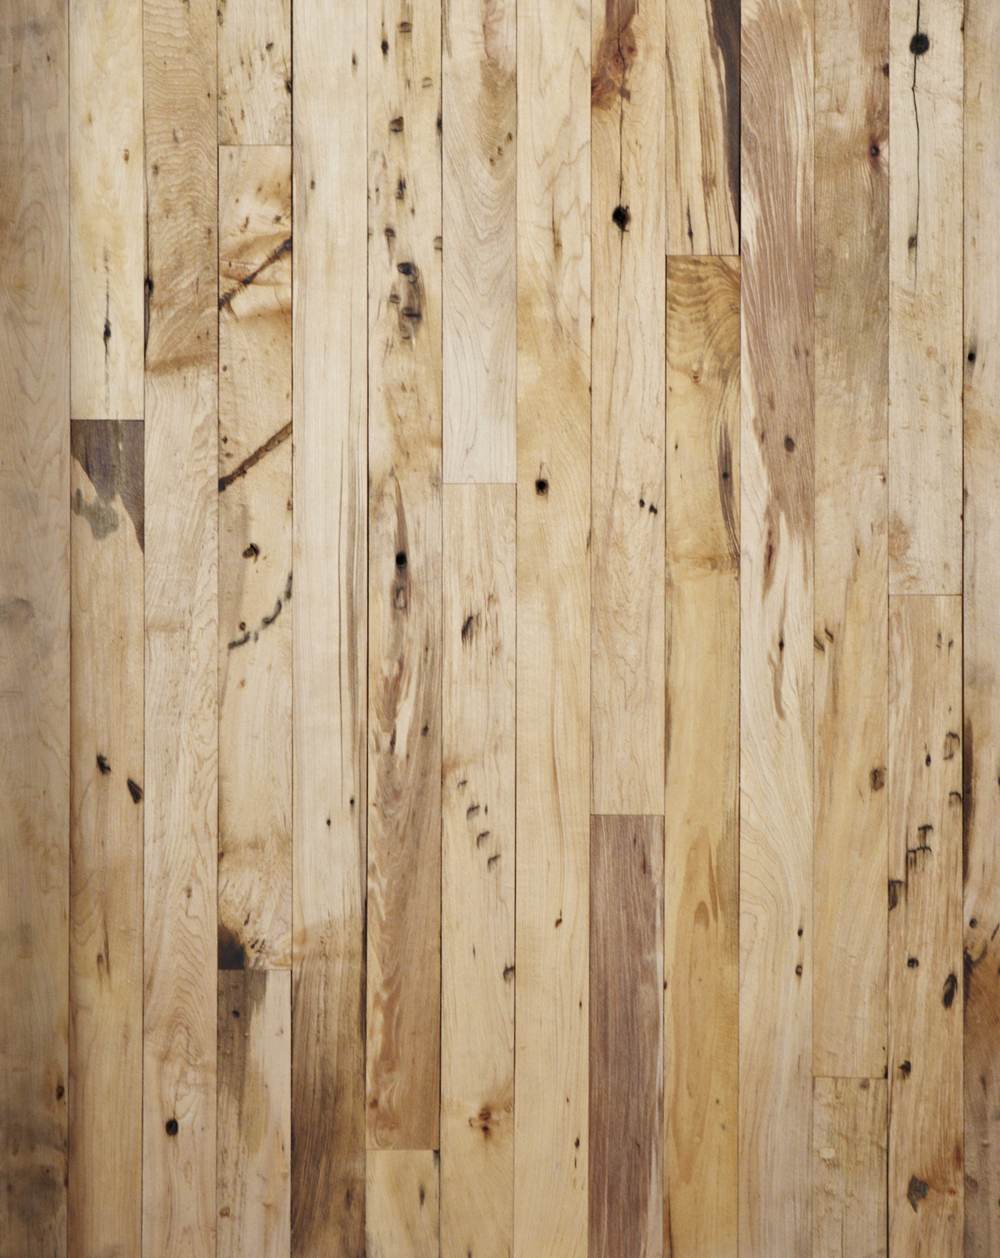 Reclaimed Travaux Maple Hardwood Flooring [New Face]